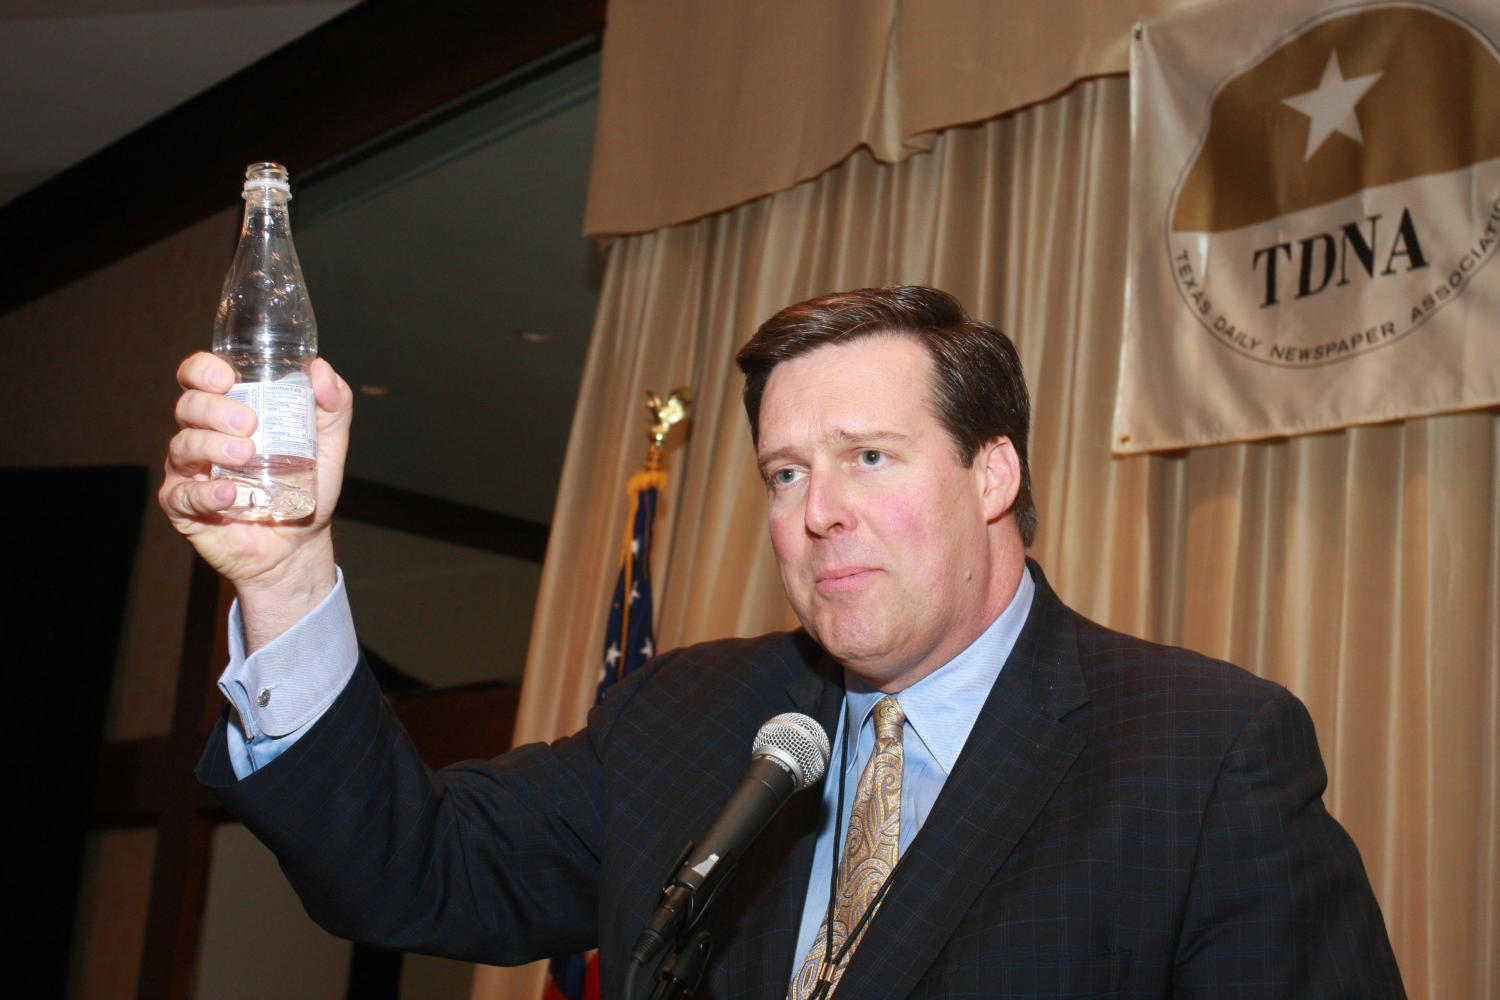 [Nelson Clyde IV giving toast at TDNA conference], Photograph of Nelson Clyde IV giving a toast during the 2010 Texas Daily Newspaper Association annual meeting held in Houston, Texas.,